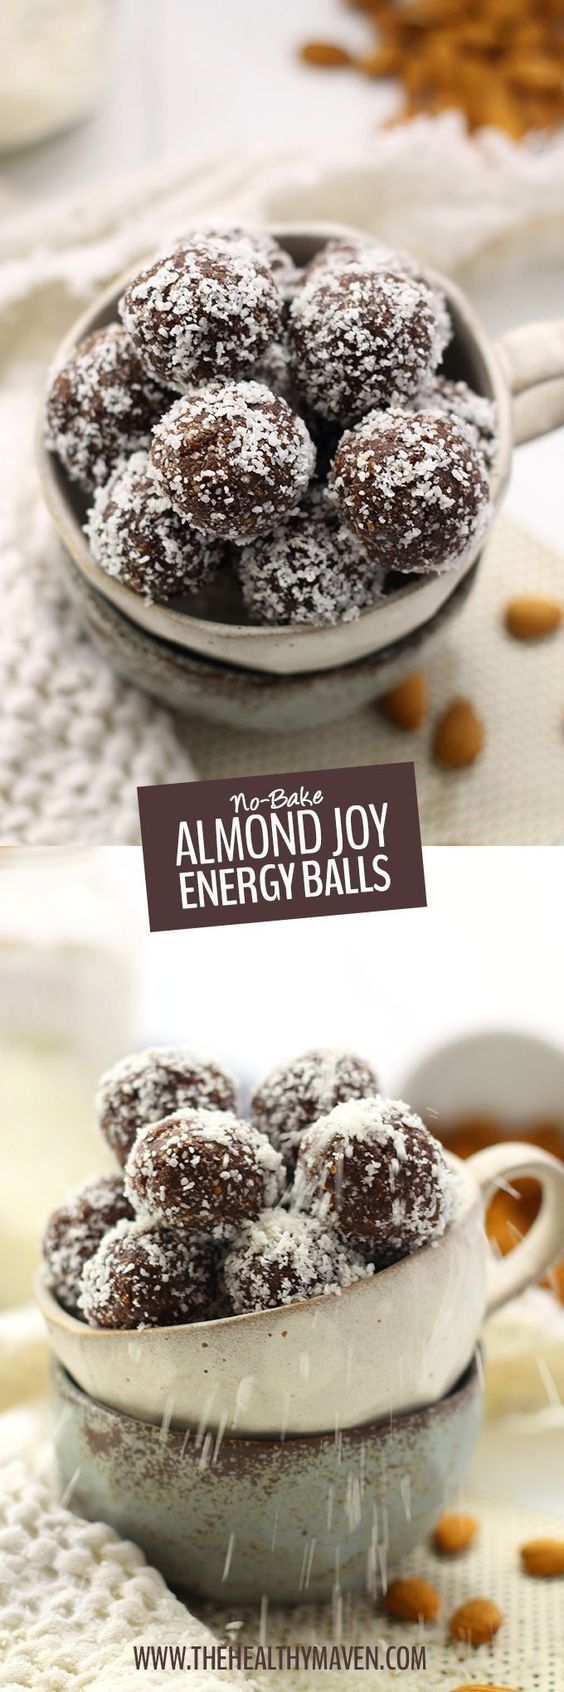 These No-Bake Almond Joy Energy Balls are inspired by the ever popular Almond Joy chocolate bar but without all the gunk! They pack a serious nutrition punch and are also gluten-free vegan AND paleo.